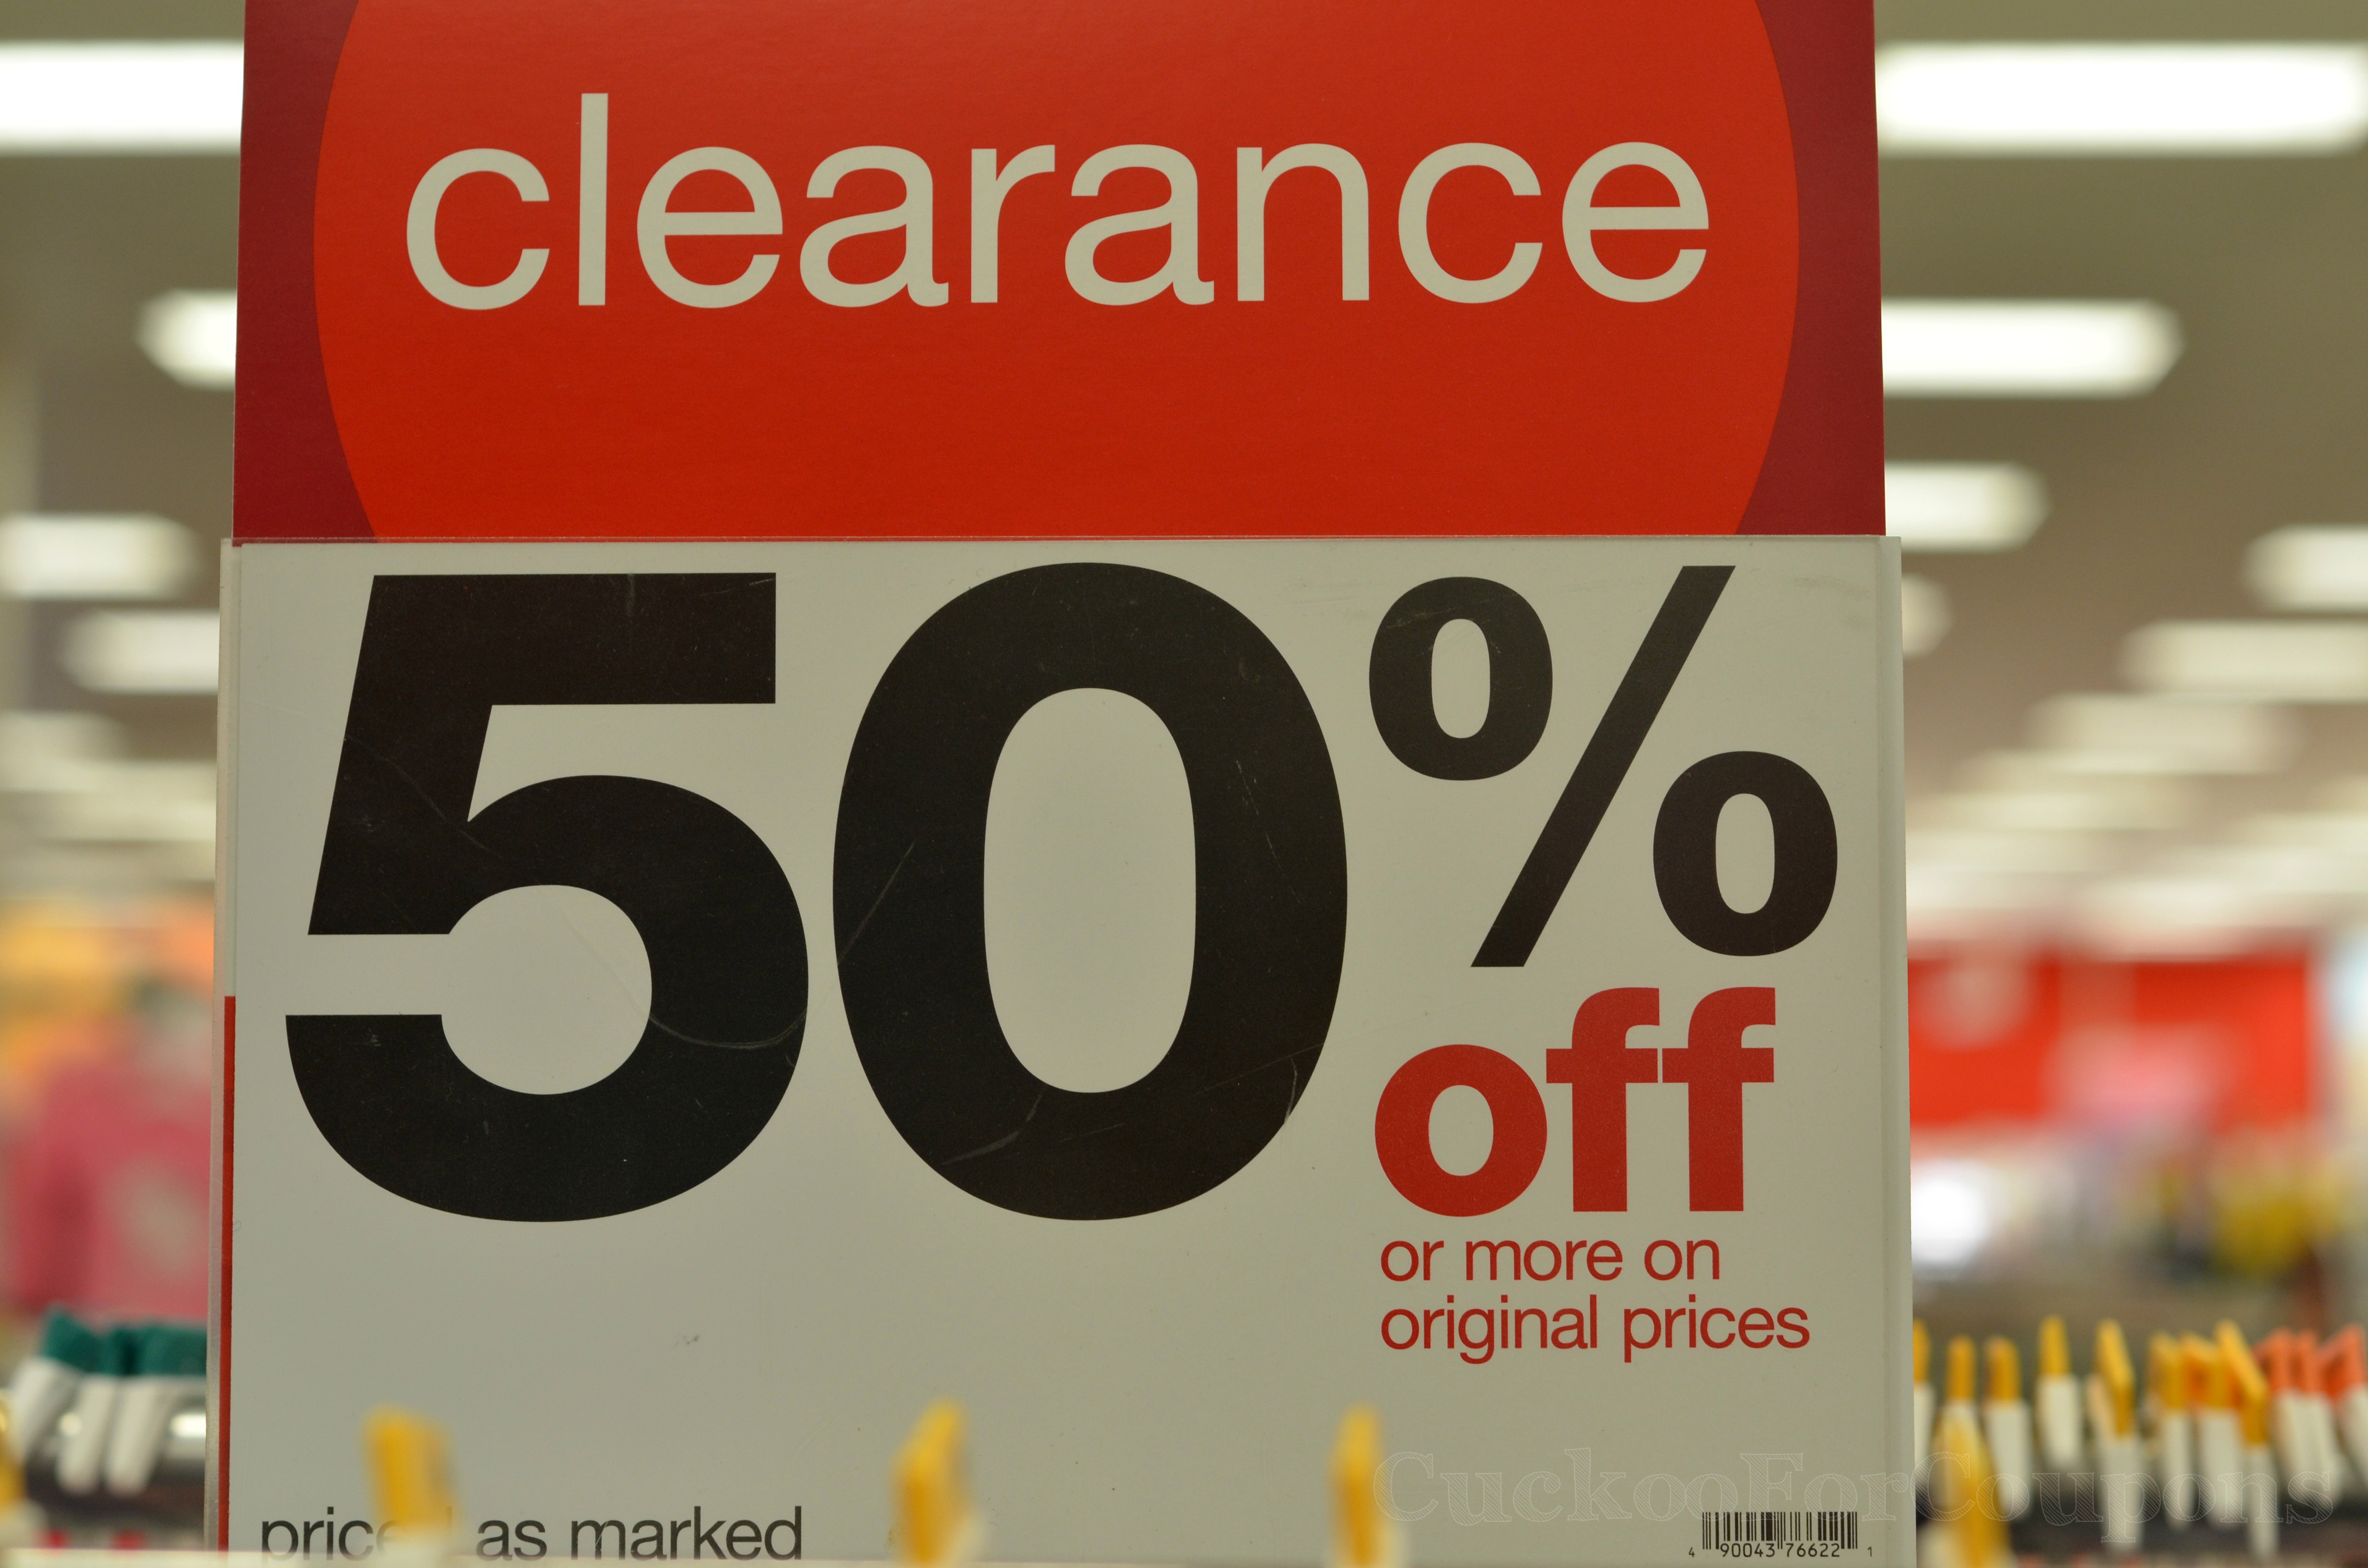 target-clearance-sign